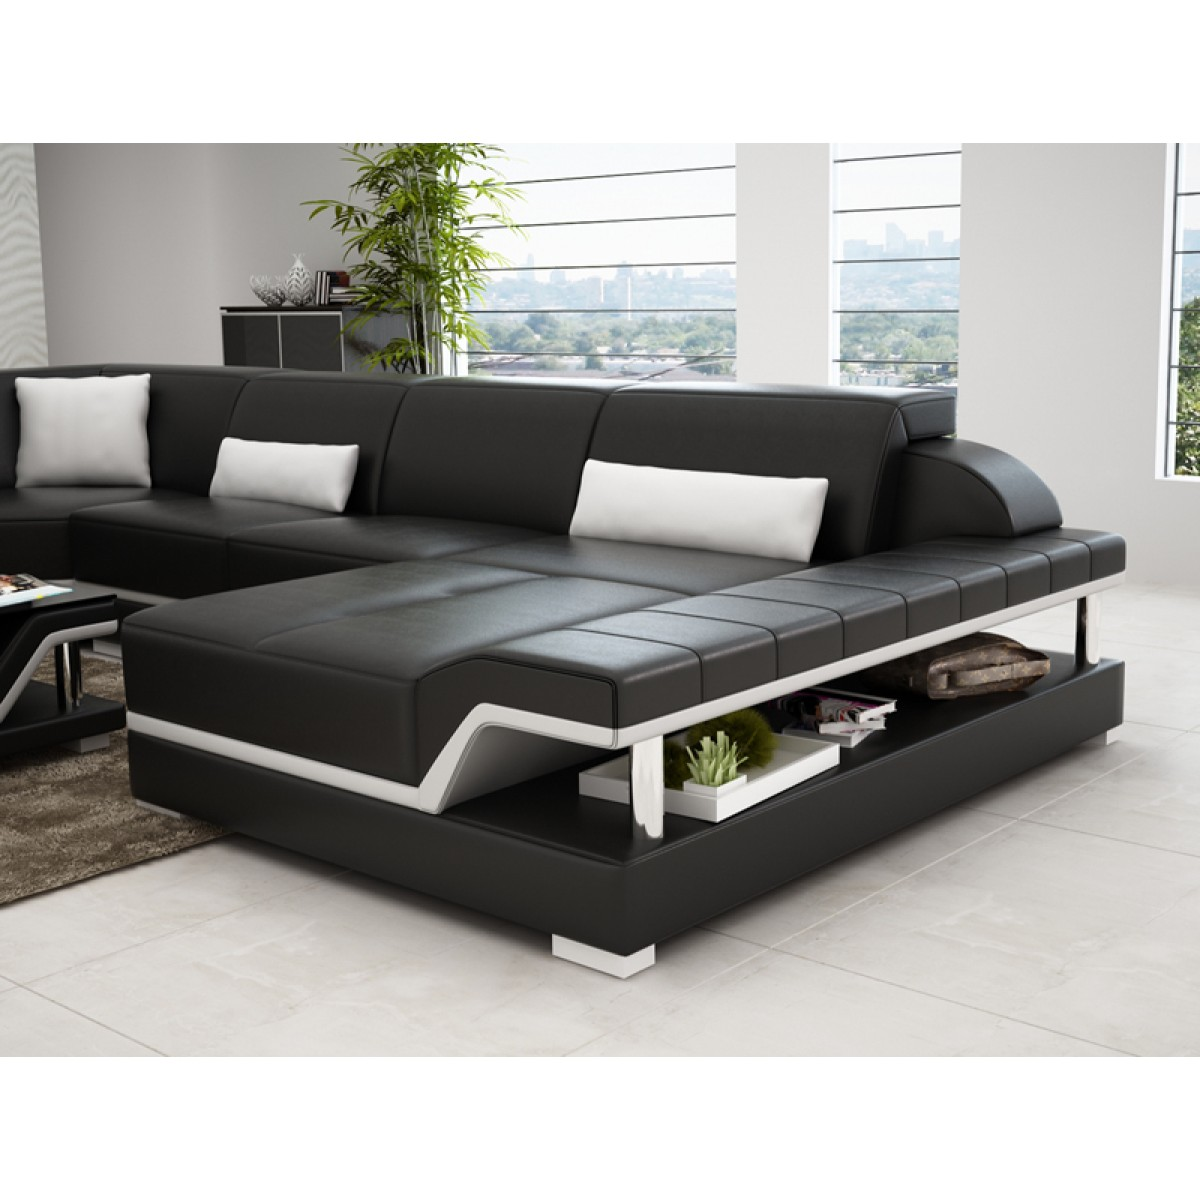 Canap d 39 angle panoramique en cuir milano xl pop - Canape double meridienne ...